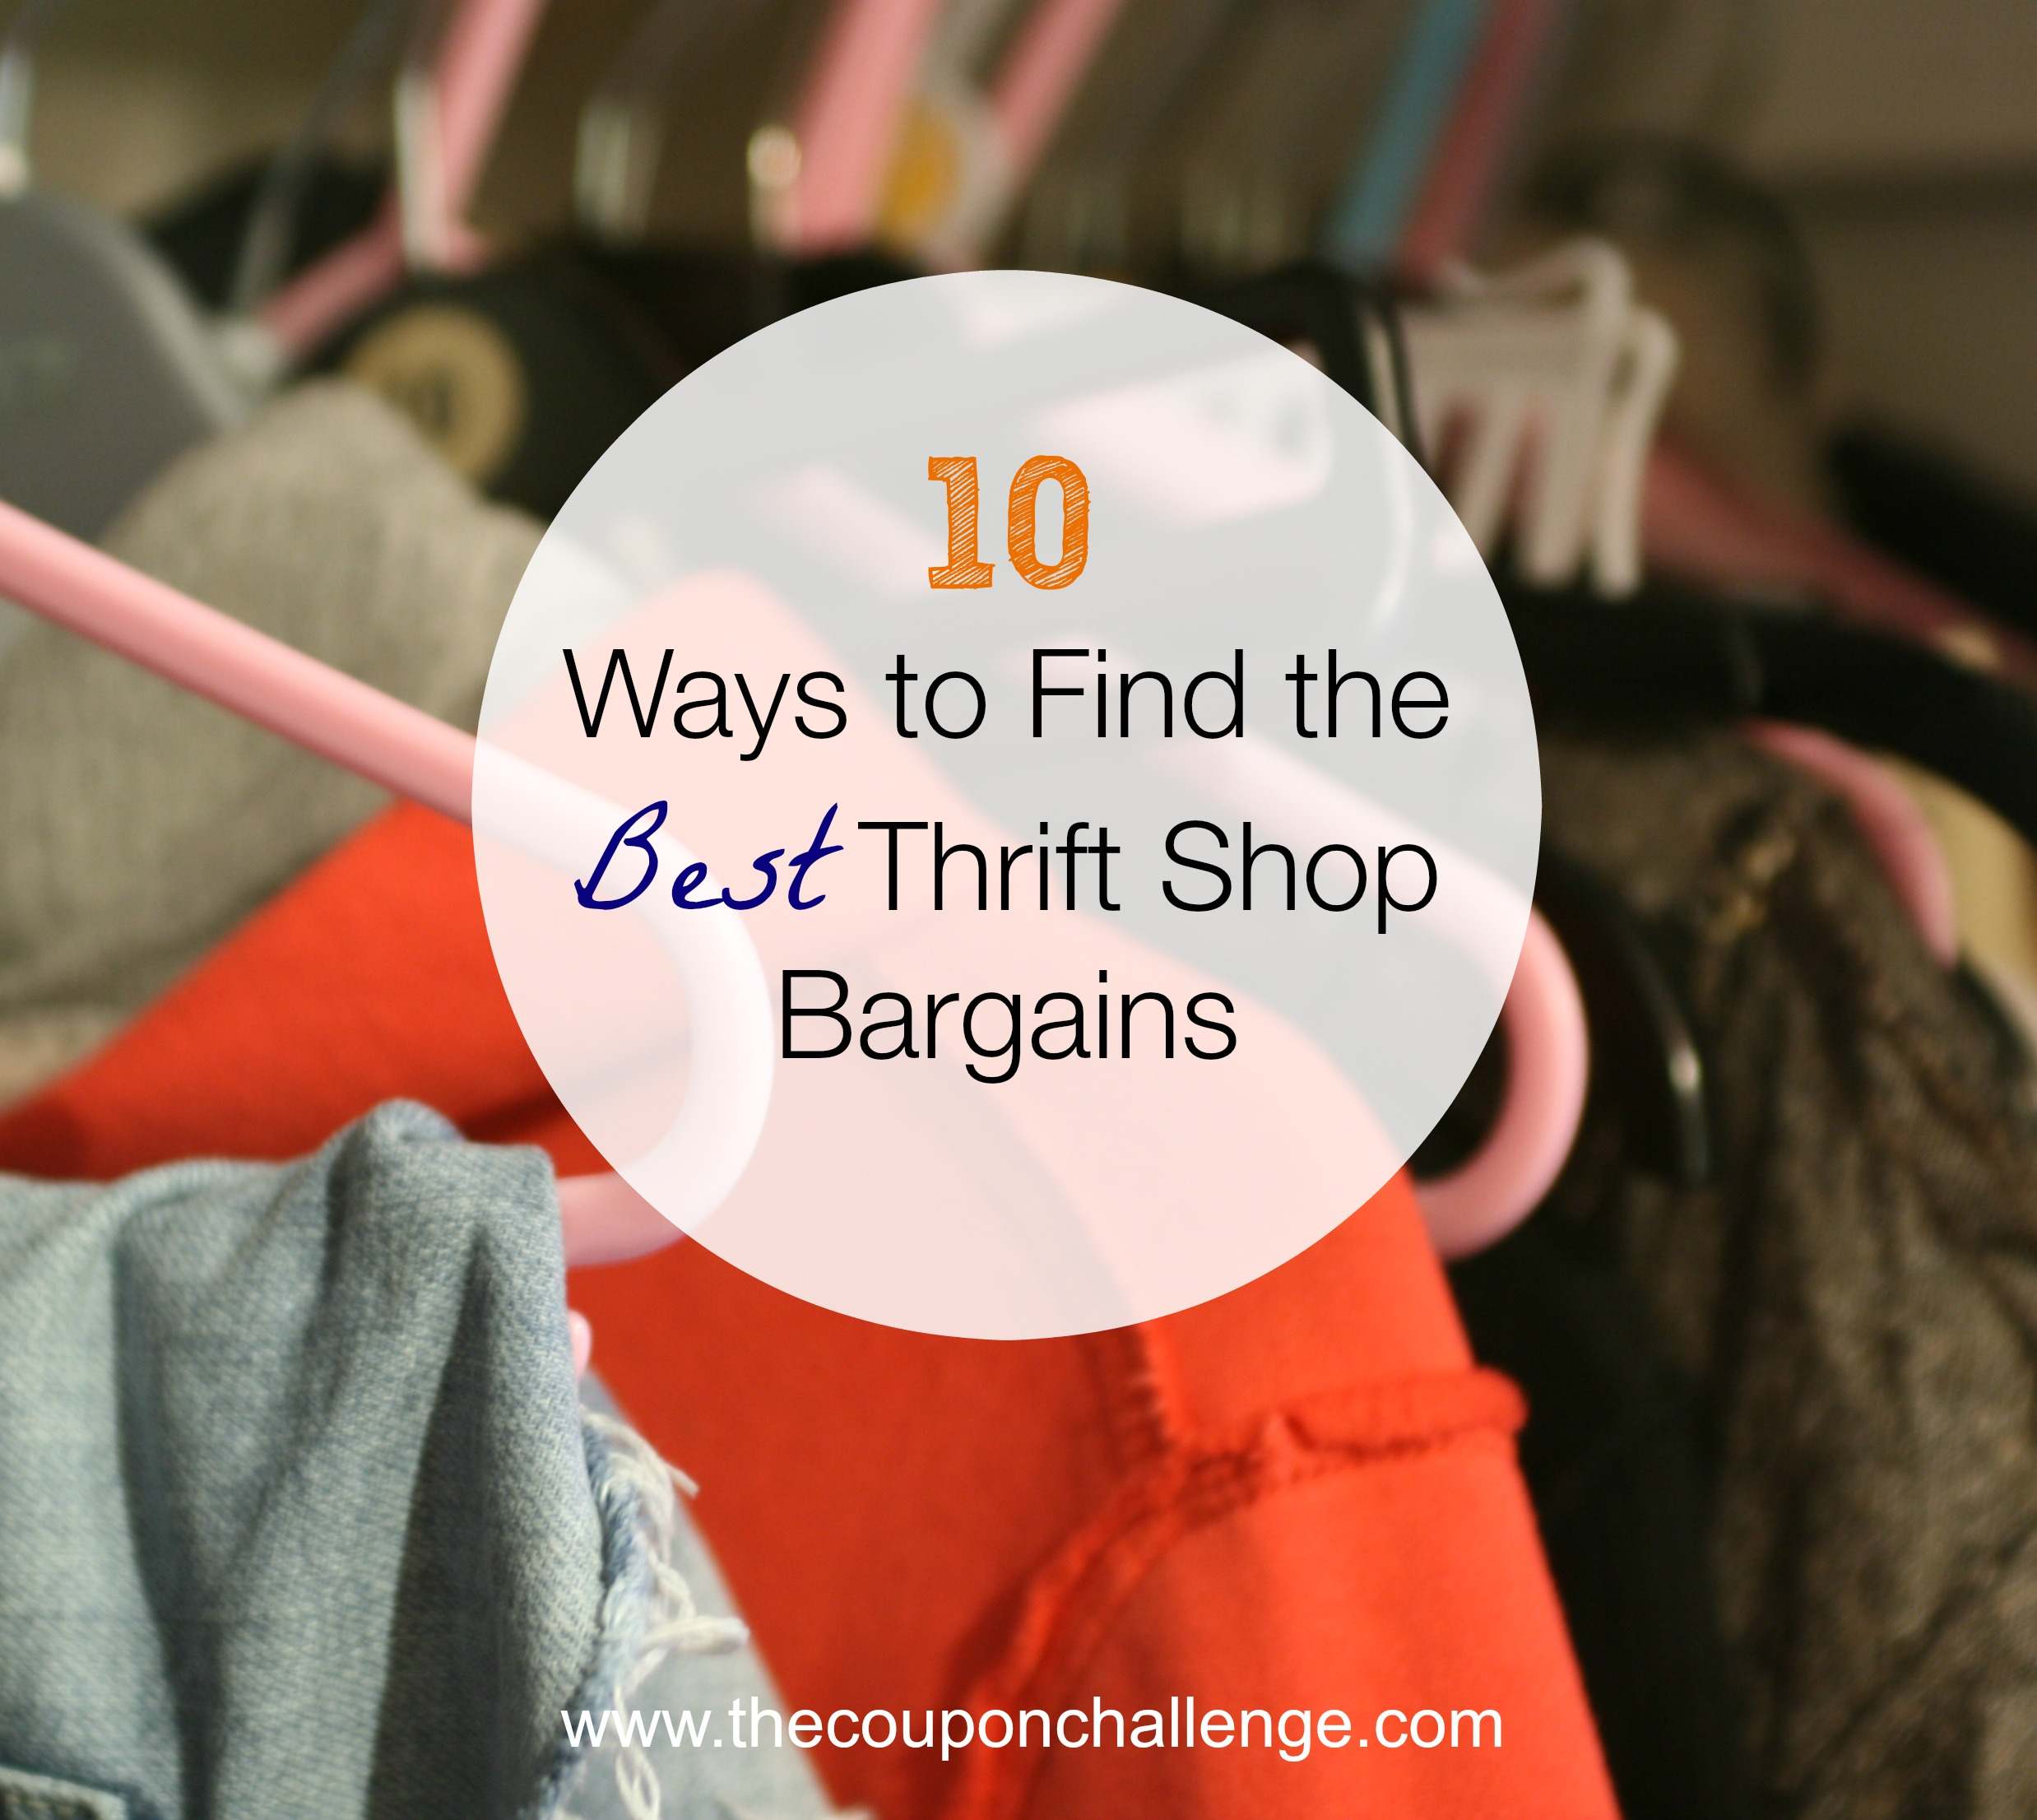 10 Ways to Find the Best Thrift Shop Bargains